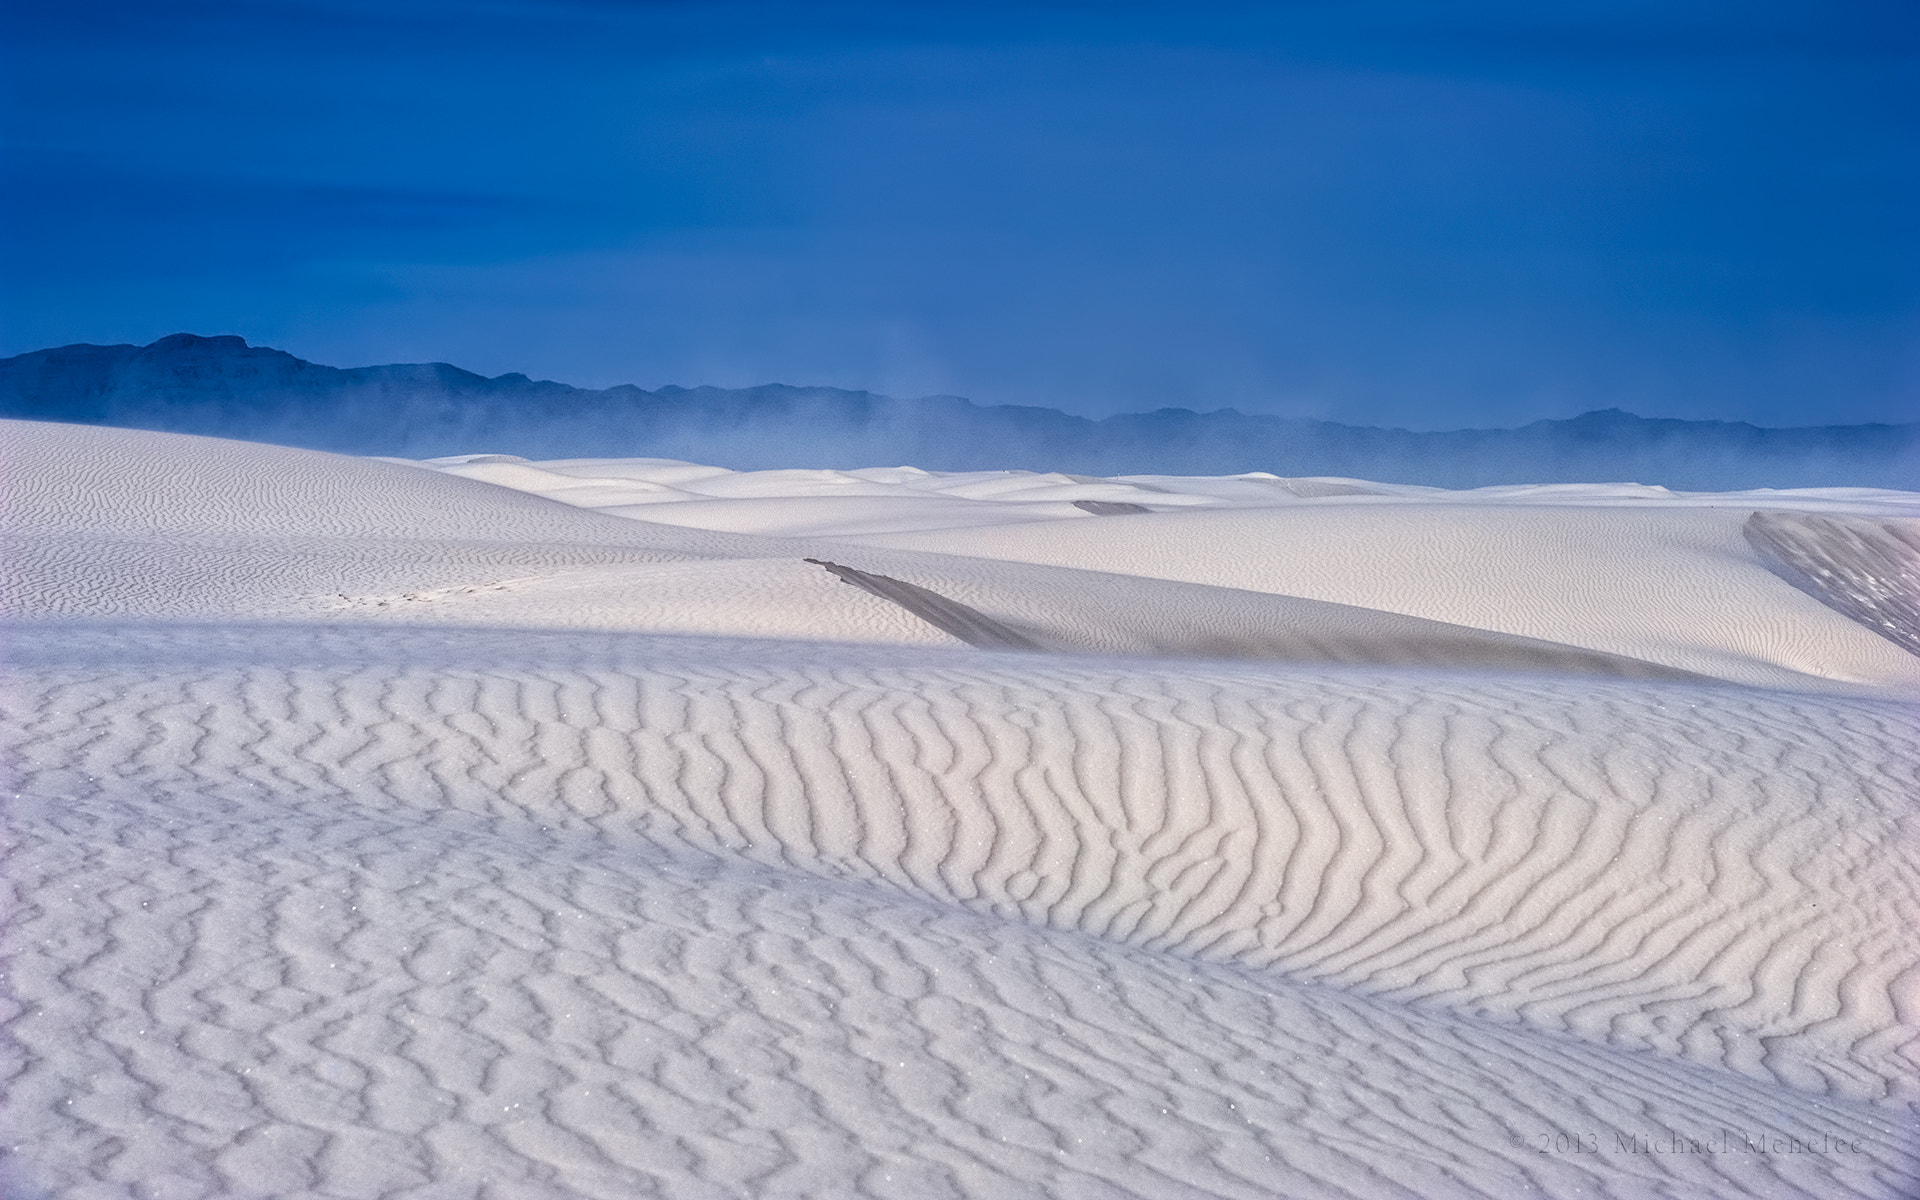 Photograph Tempestuous Dunes of White Sands National Monument by Michael Menefee on 500px